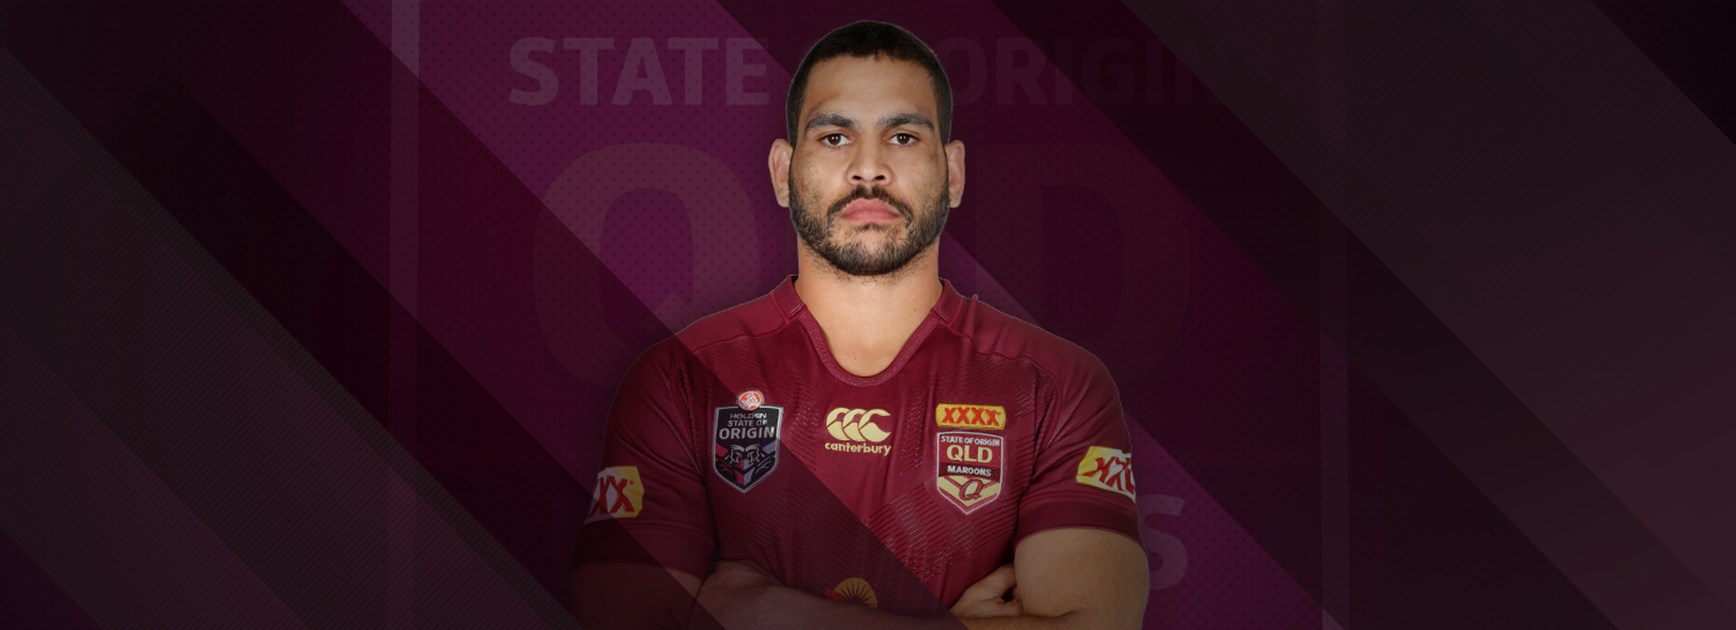 Rabbitohs congratulate new Maroons captain Inglis